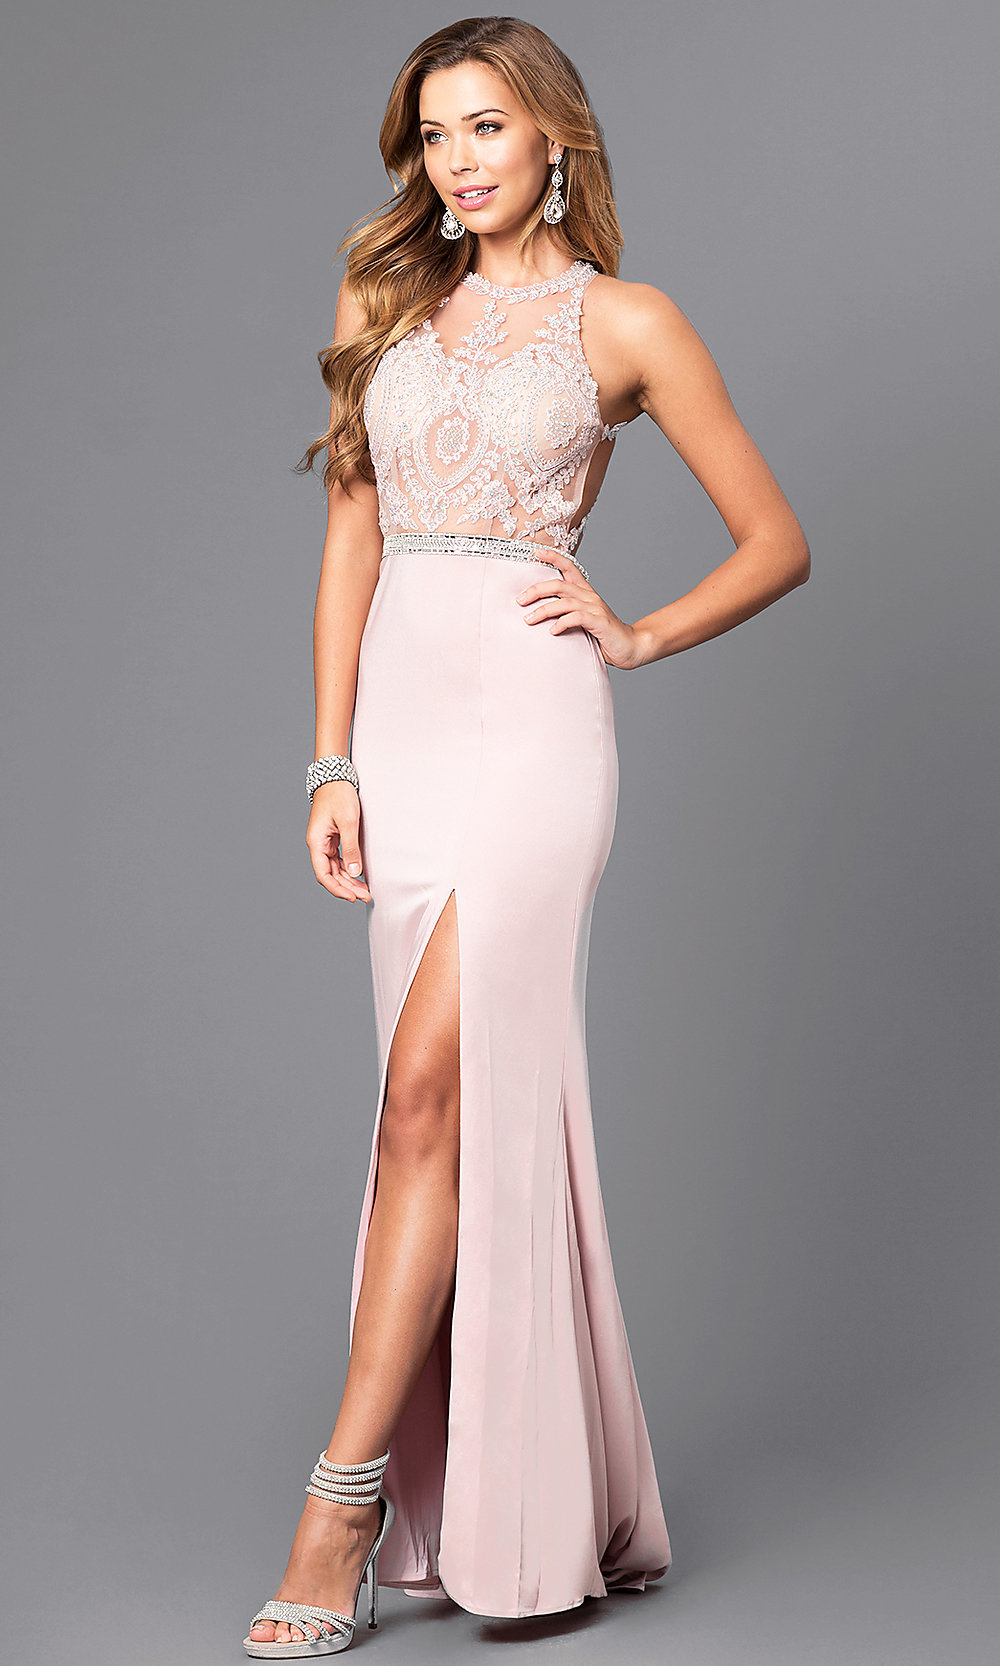 782f59b0f47 Tap to expand · Image of long formal prom dress with beaded lace bodice.